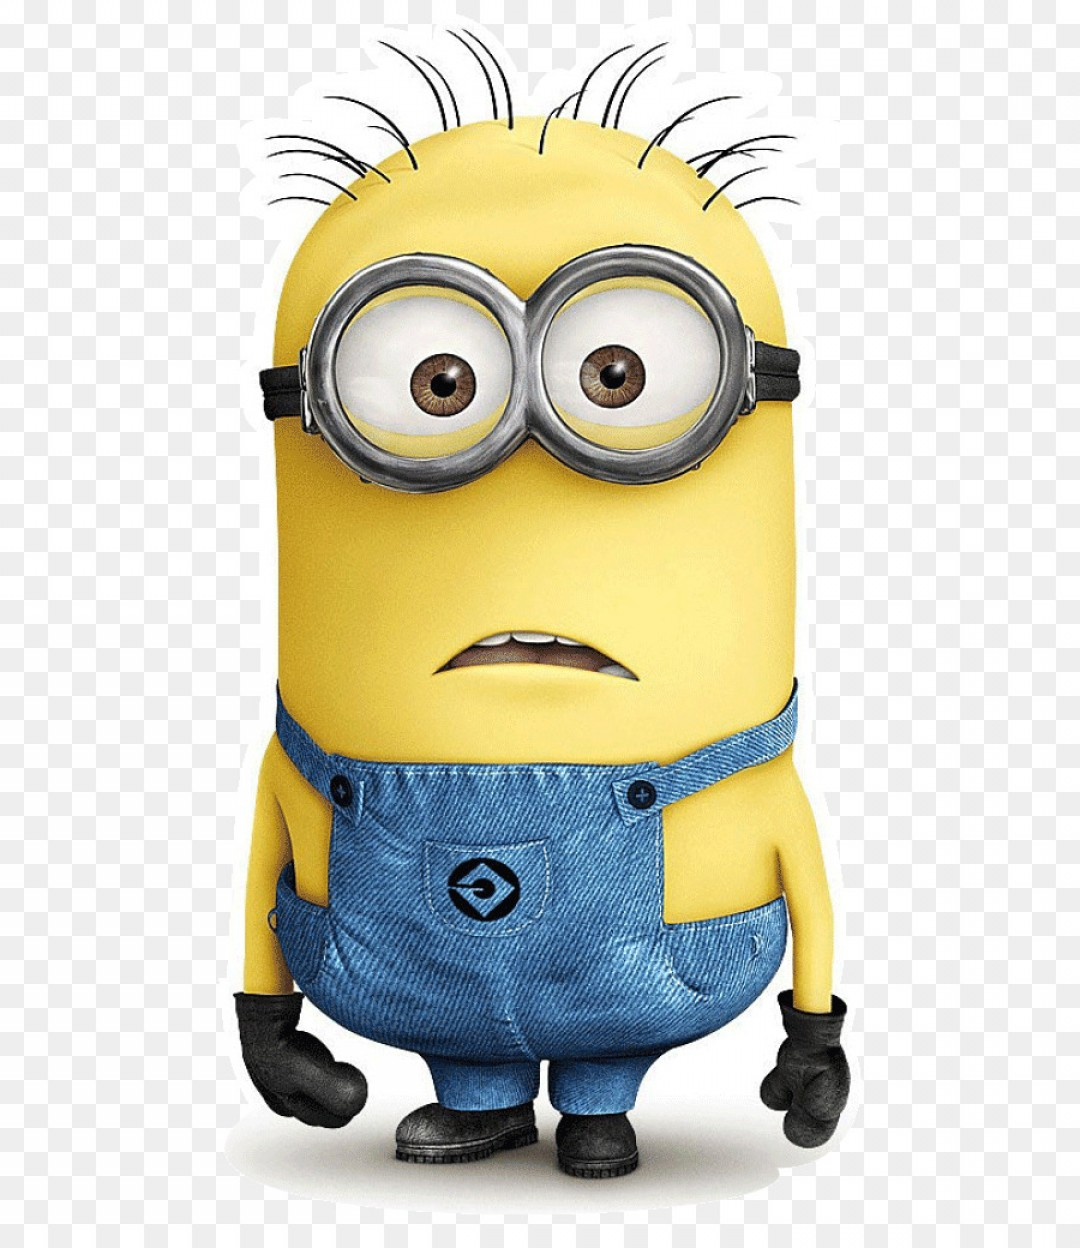 Animated Despicable Me Vector: Png Minions Despicable Me Image Happy Film Ampquotampq